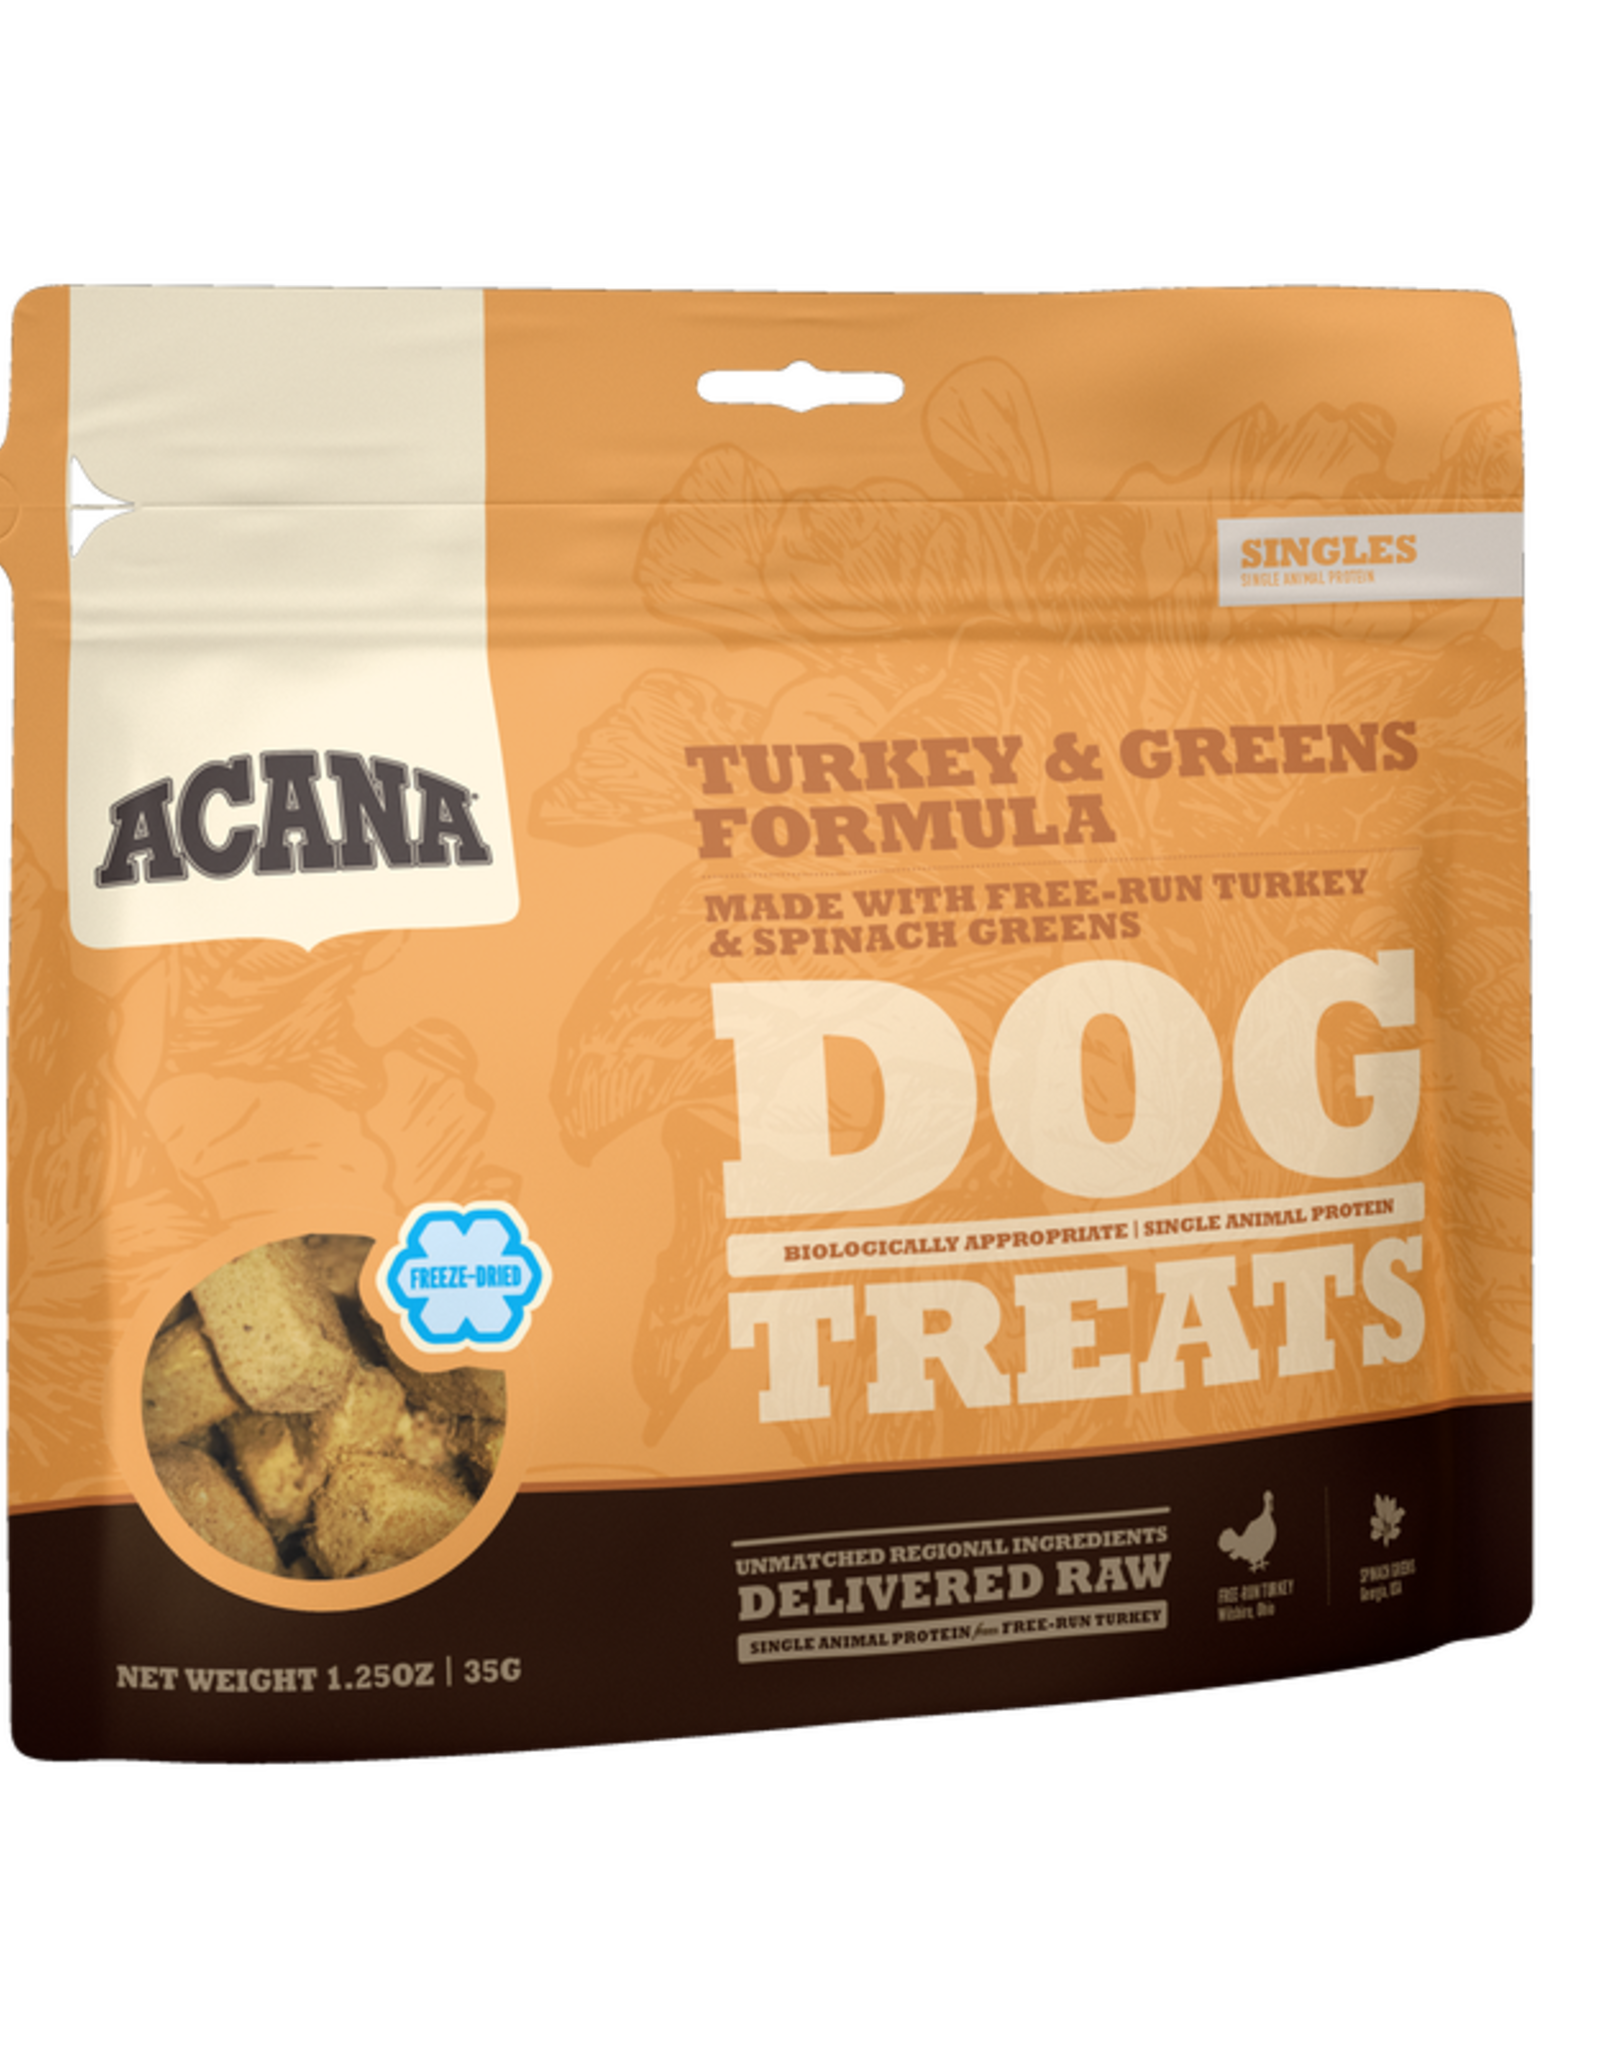 Acana Freeze-Dried Turkey Treats - 3.25oz